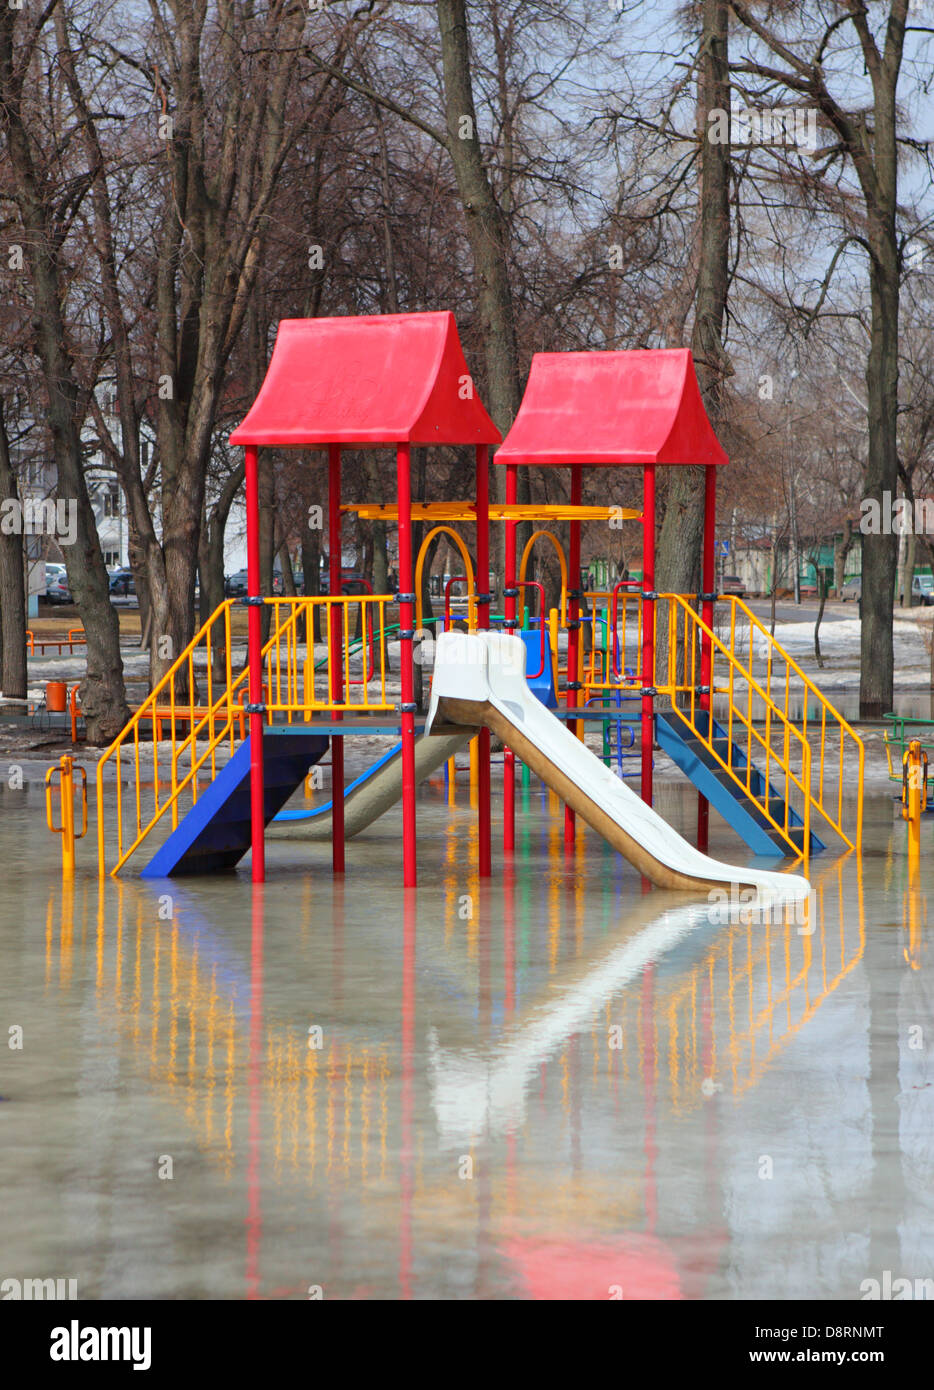 Flood Waters Empty the Childrens Playground Stock Photo